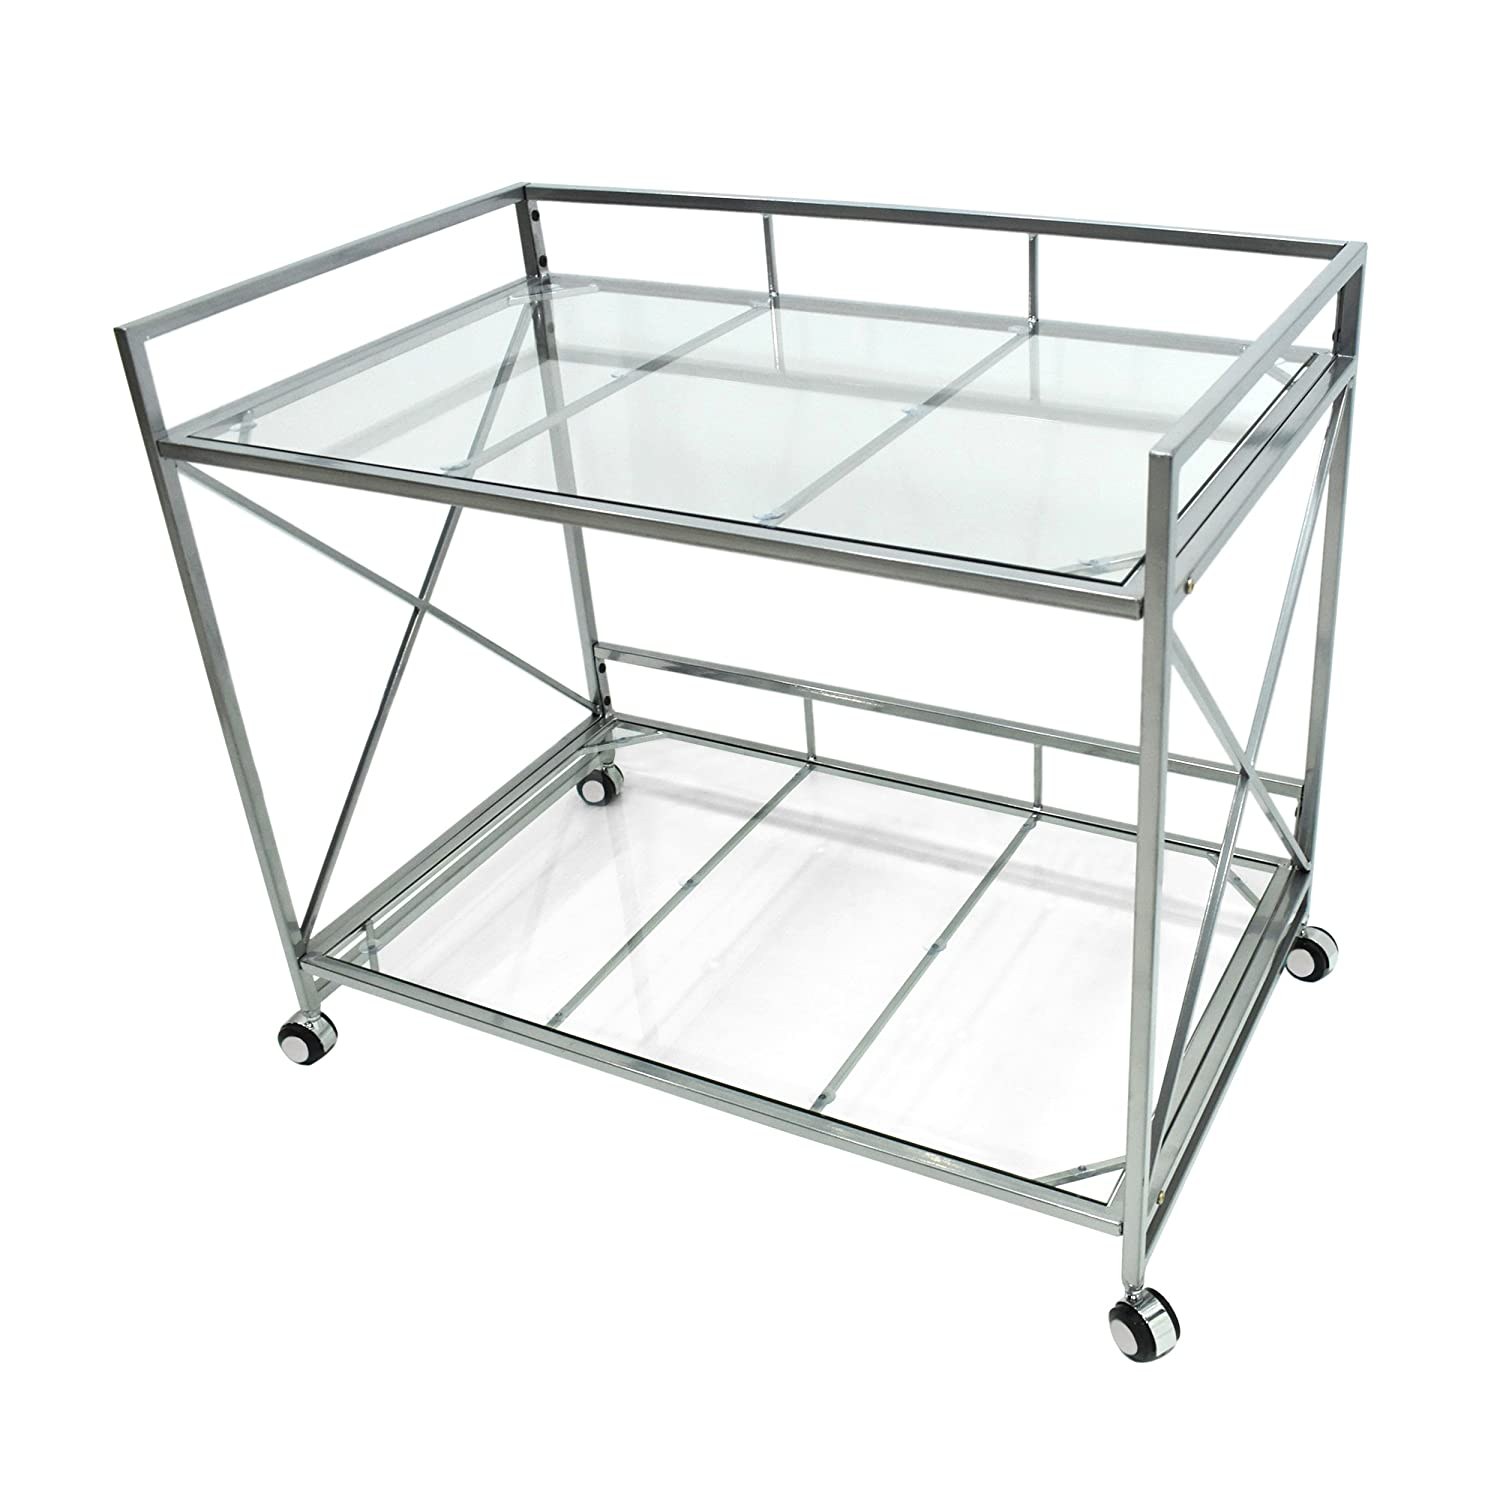 Danae Industrial Modern Iron and Glass Bar Cart, Silver